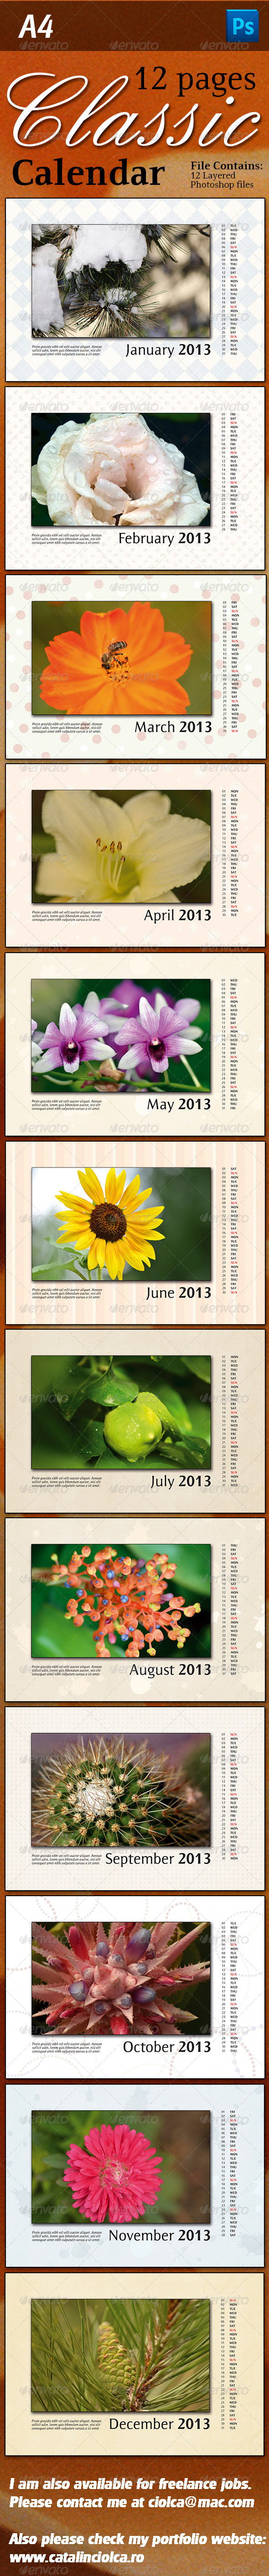 GraphicRiver 12 Pages Classic Calendar 3830758